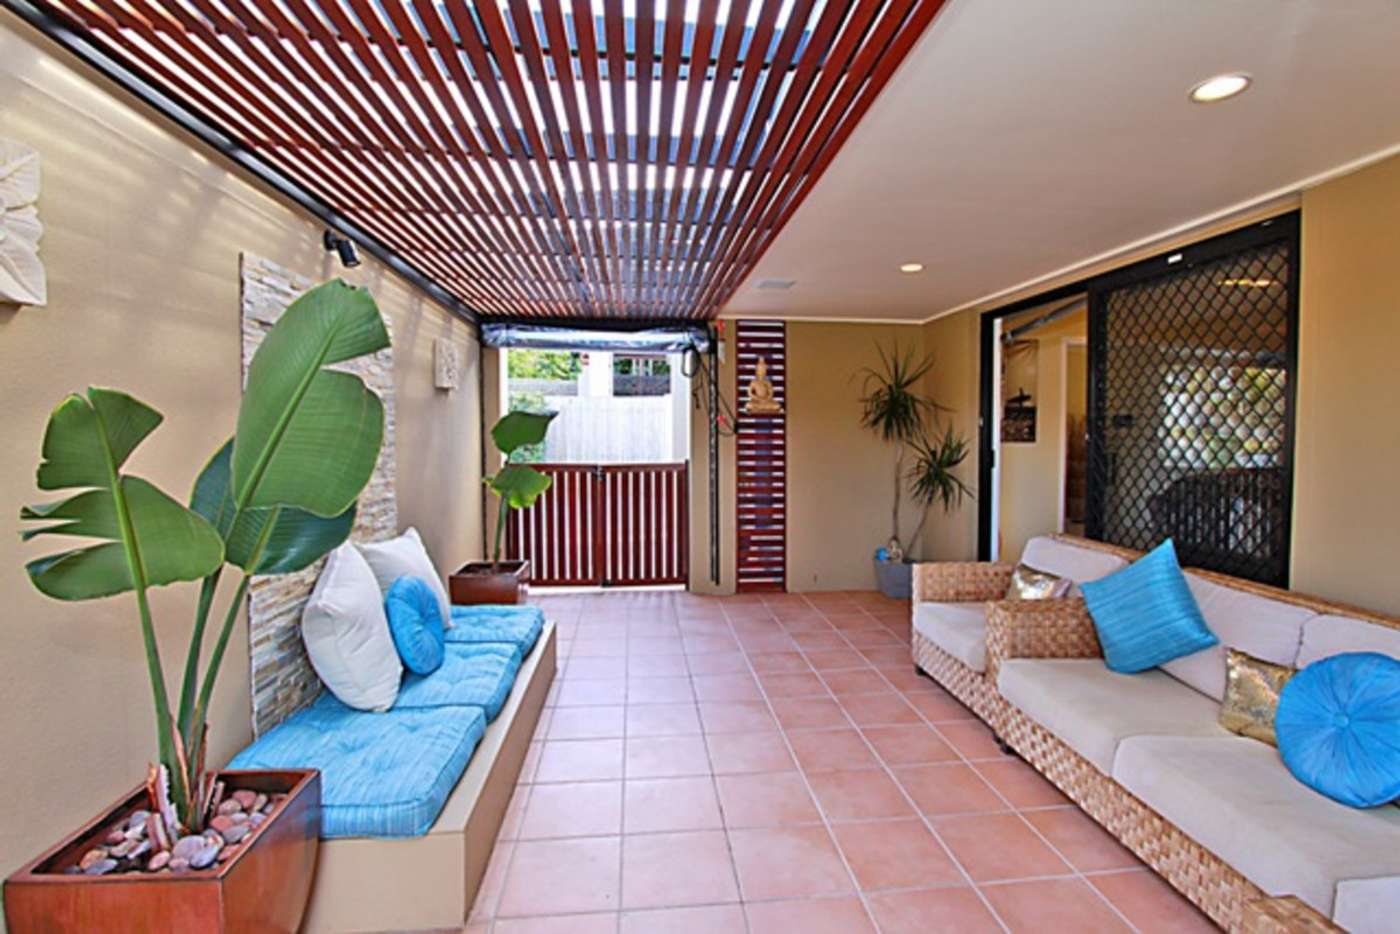 Main view of Homely house listing, 1/5 Virginia Grove, Southport QLD 4215